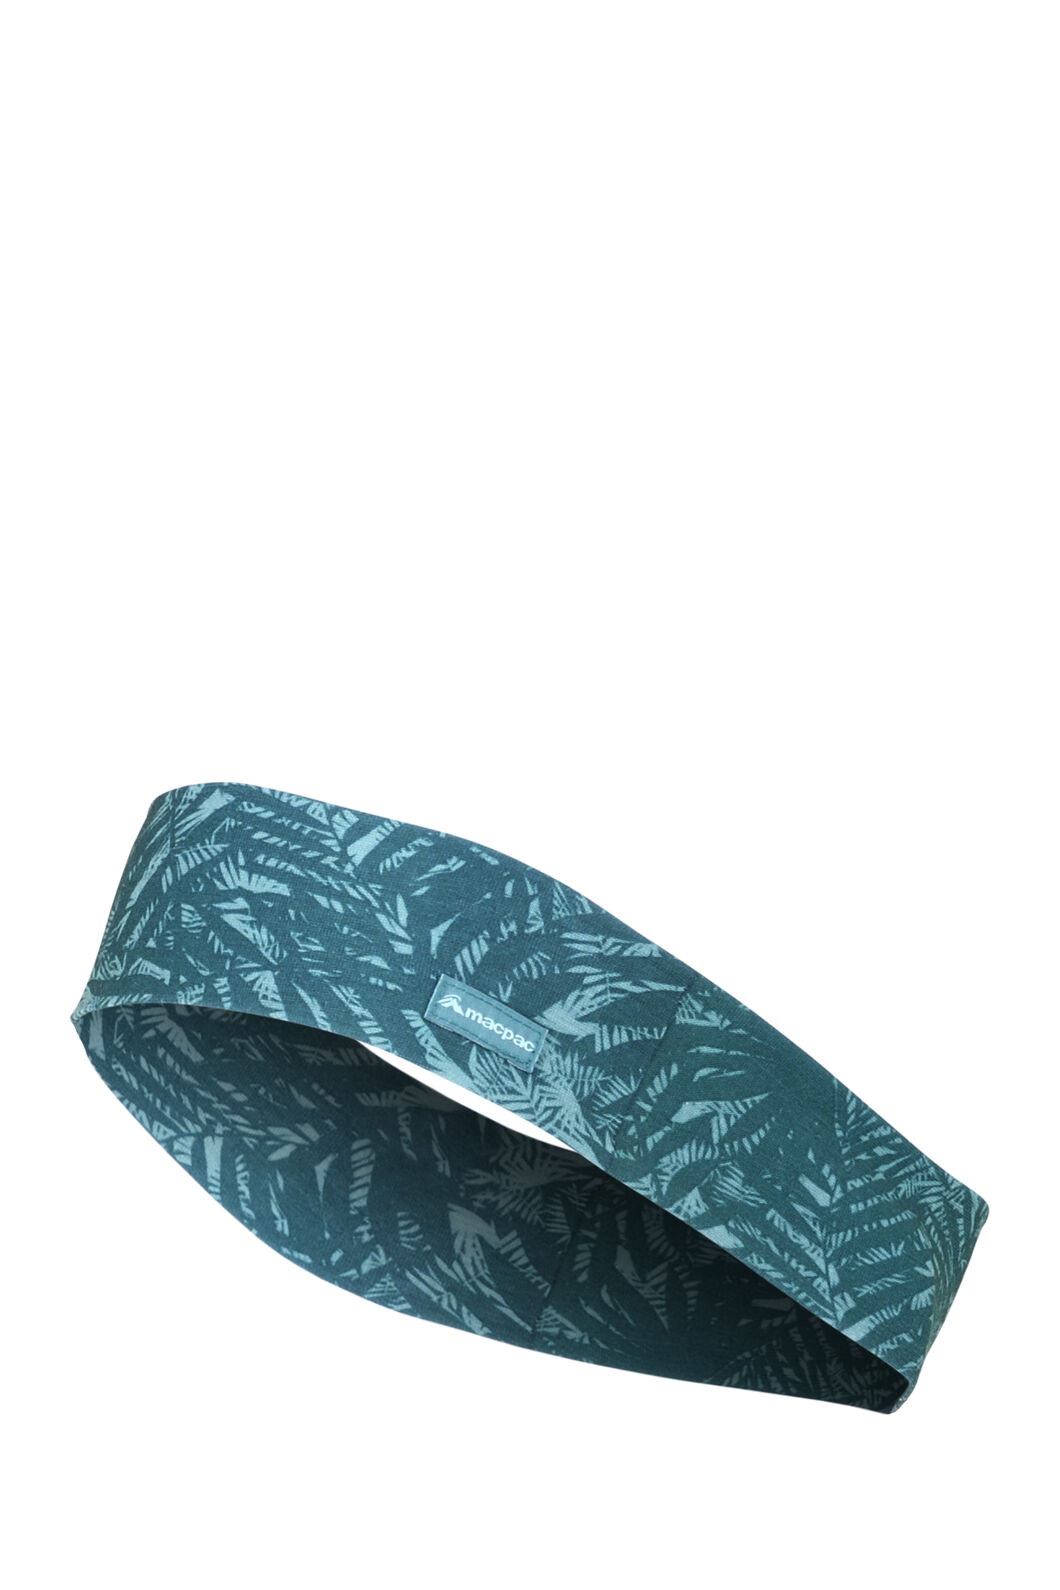 Macpac Light Headband, Bayberry Print, hi-res